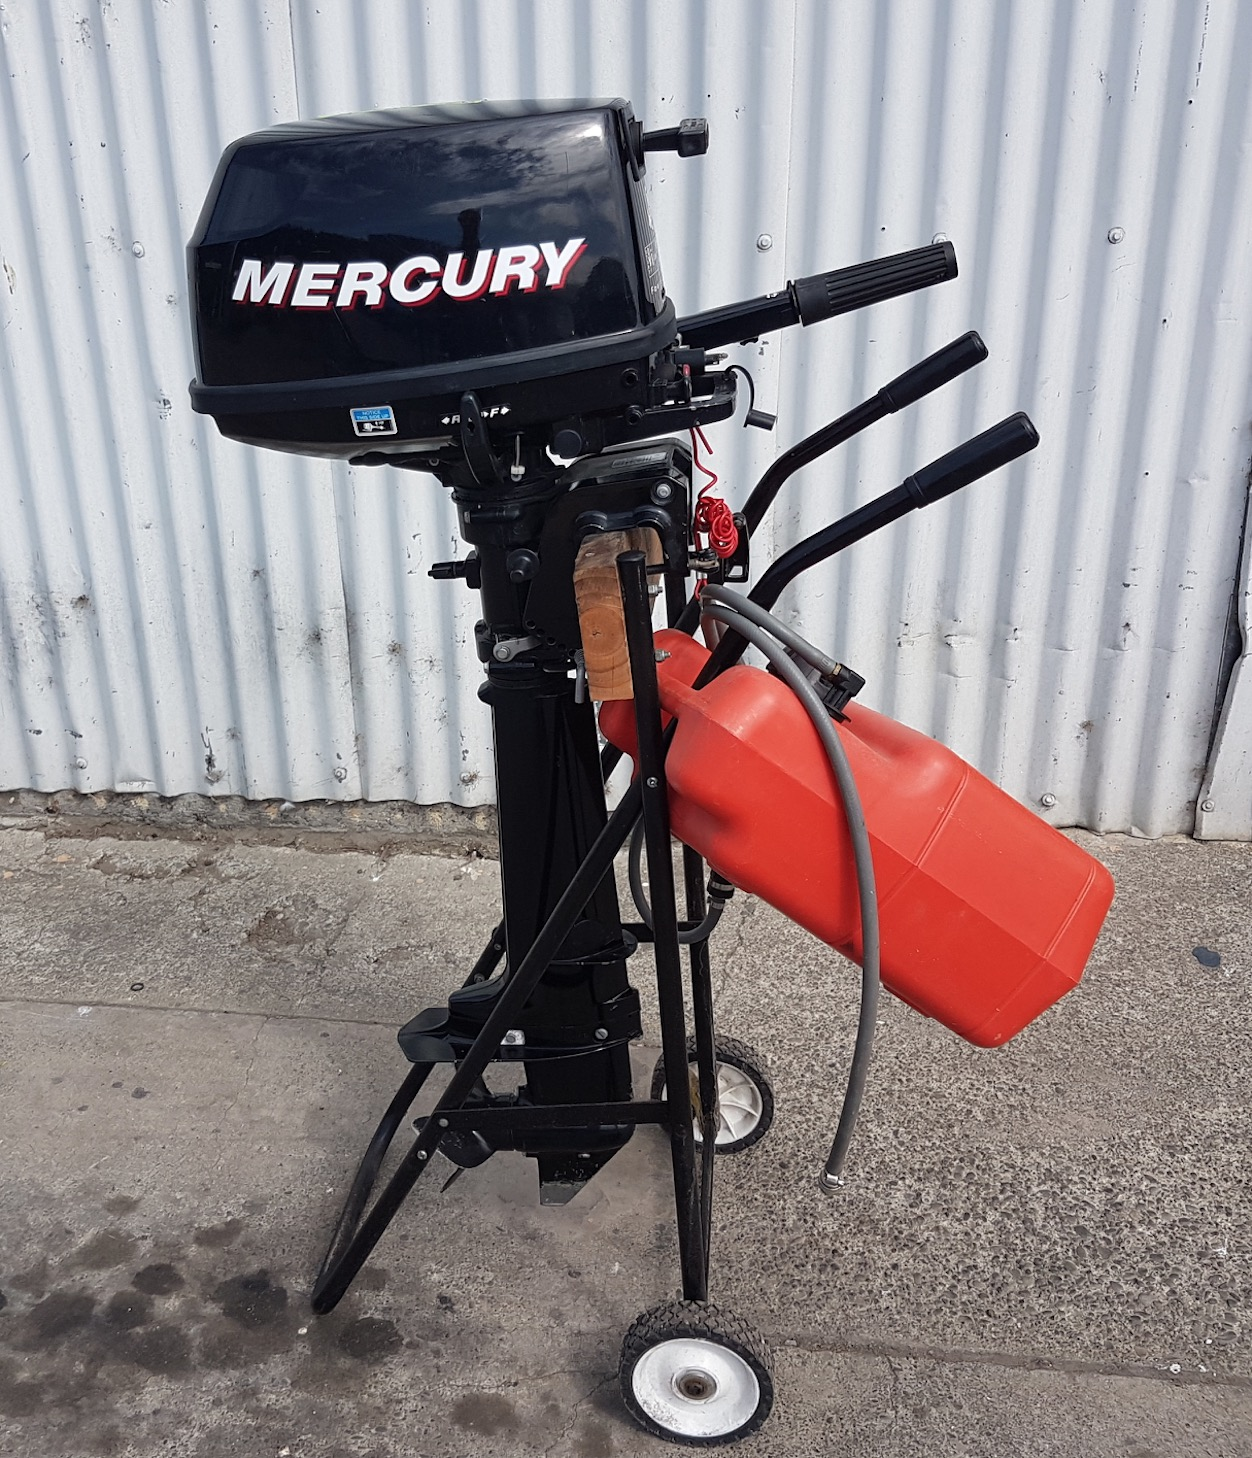 Mercury 6HP 4 Stroke Long Shaft